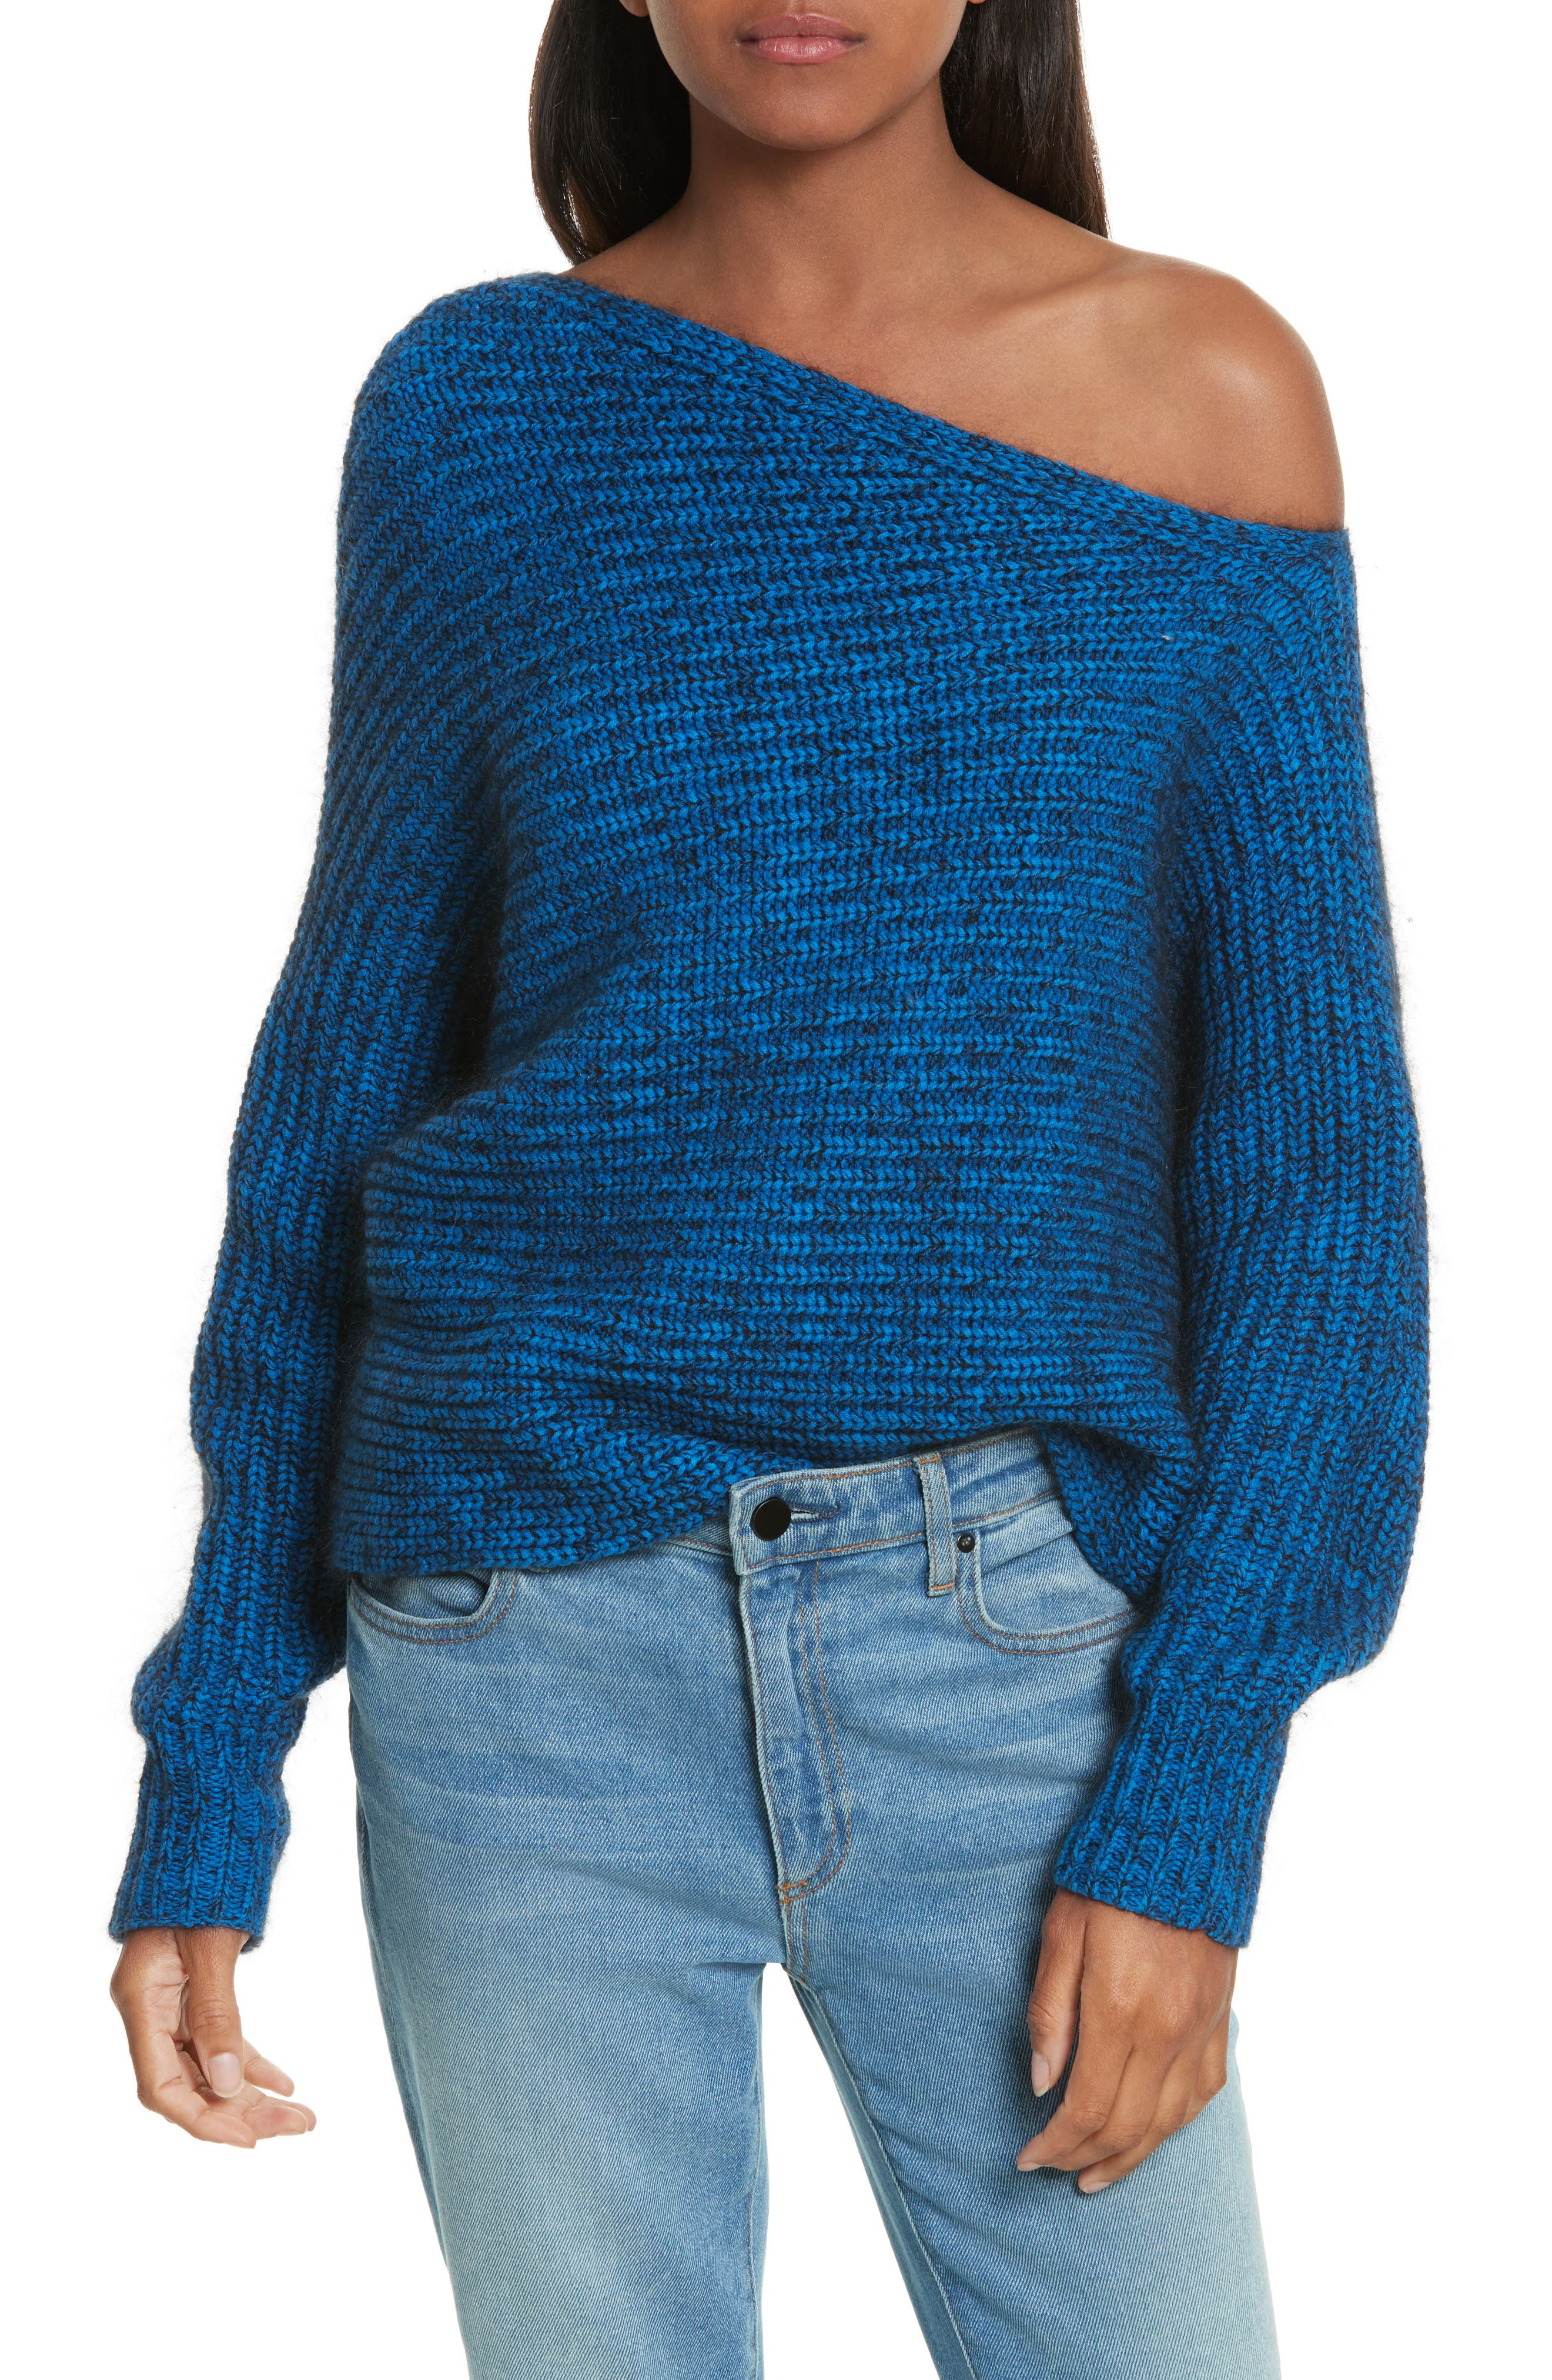 Alternate Image 1 Selected - T by Alexander Wang Asymmetrical Knit Sweater